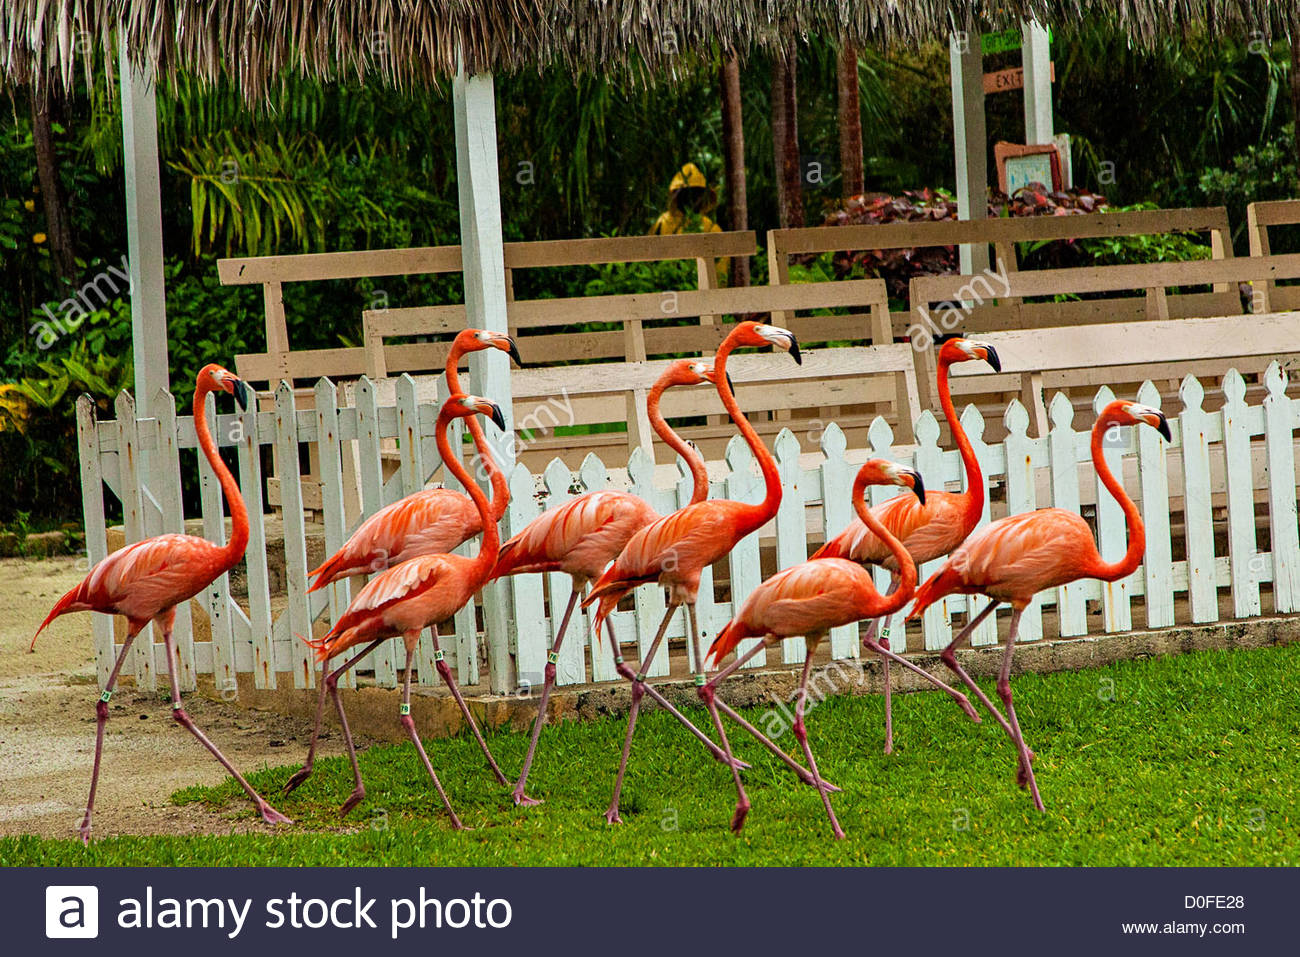 Ardastra Gardens, Zoo, and Conservation Centre New Providence and Paradise Islands, Caribbean flamingos perform their daily march at the Ardastra ...